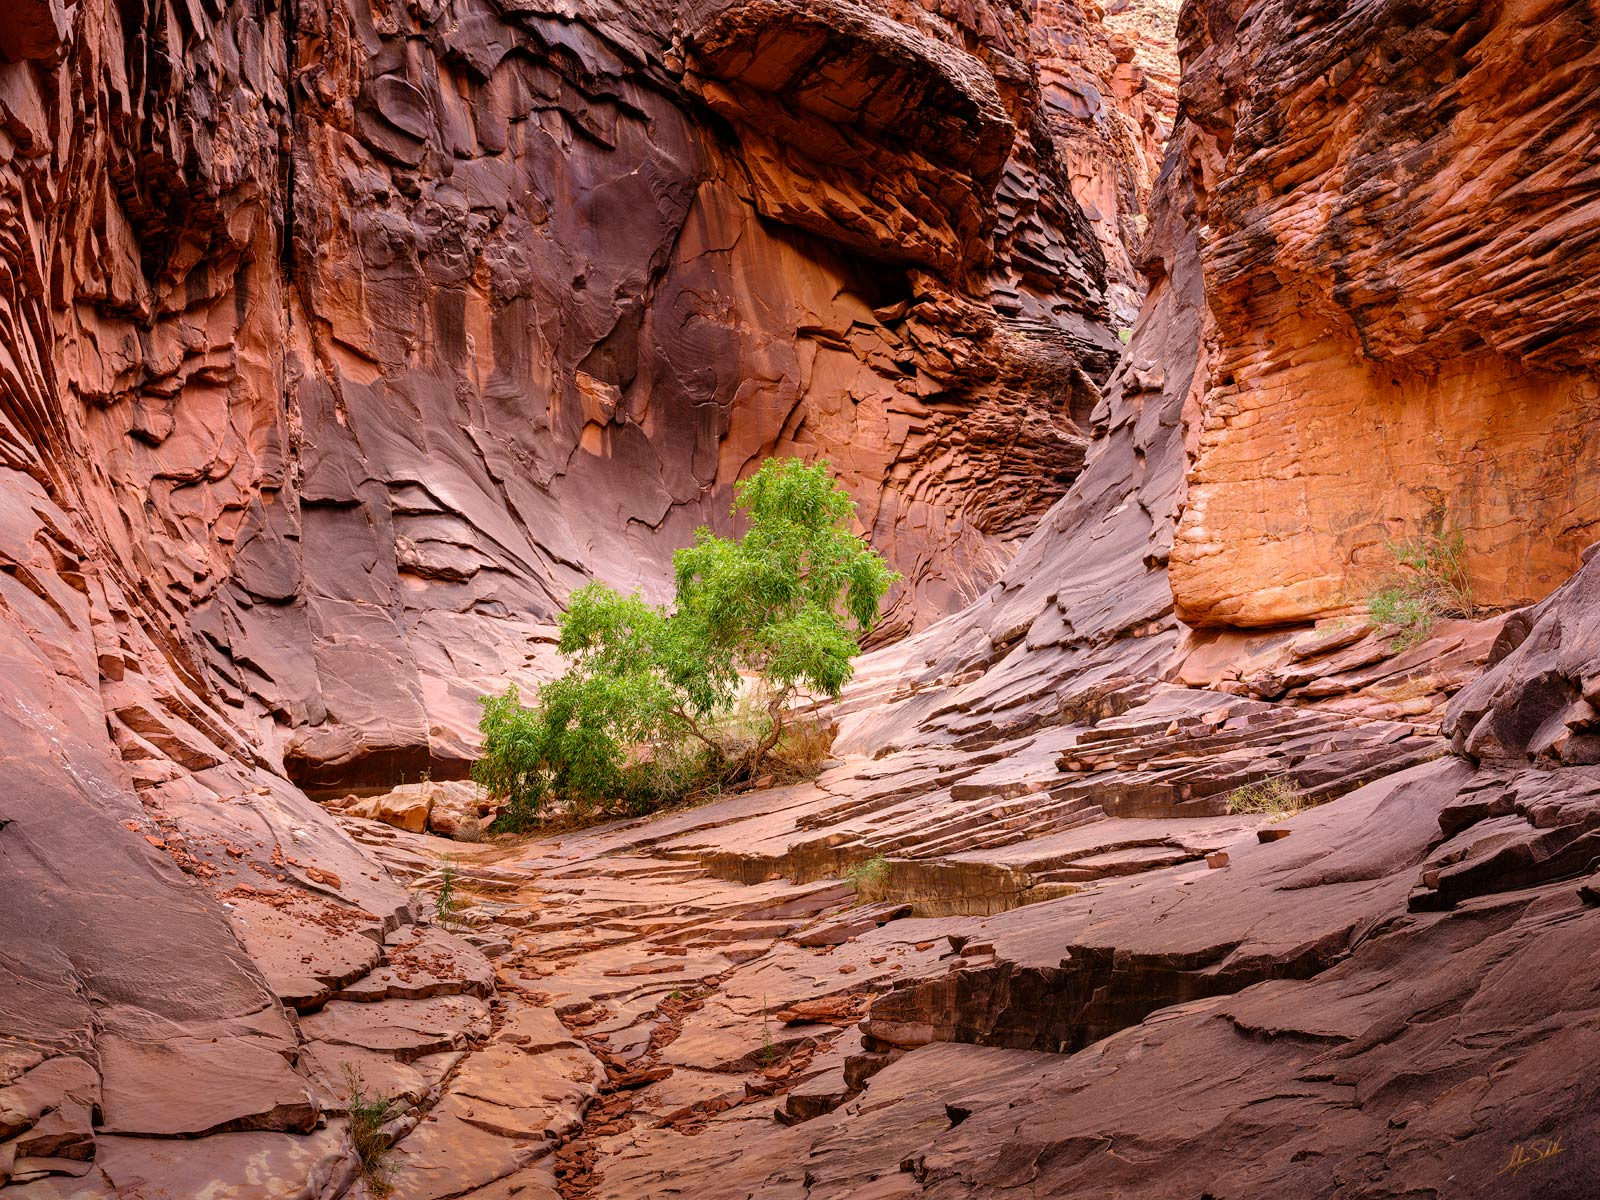 Below the Rim, Expedition, FujiFilm, GFX, GFX 100, Grand Canyon, National Park, North Canyon, River Trip, Tree, photo